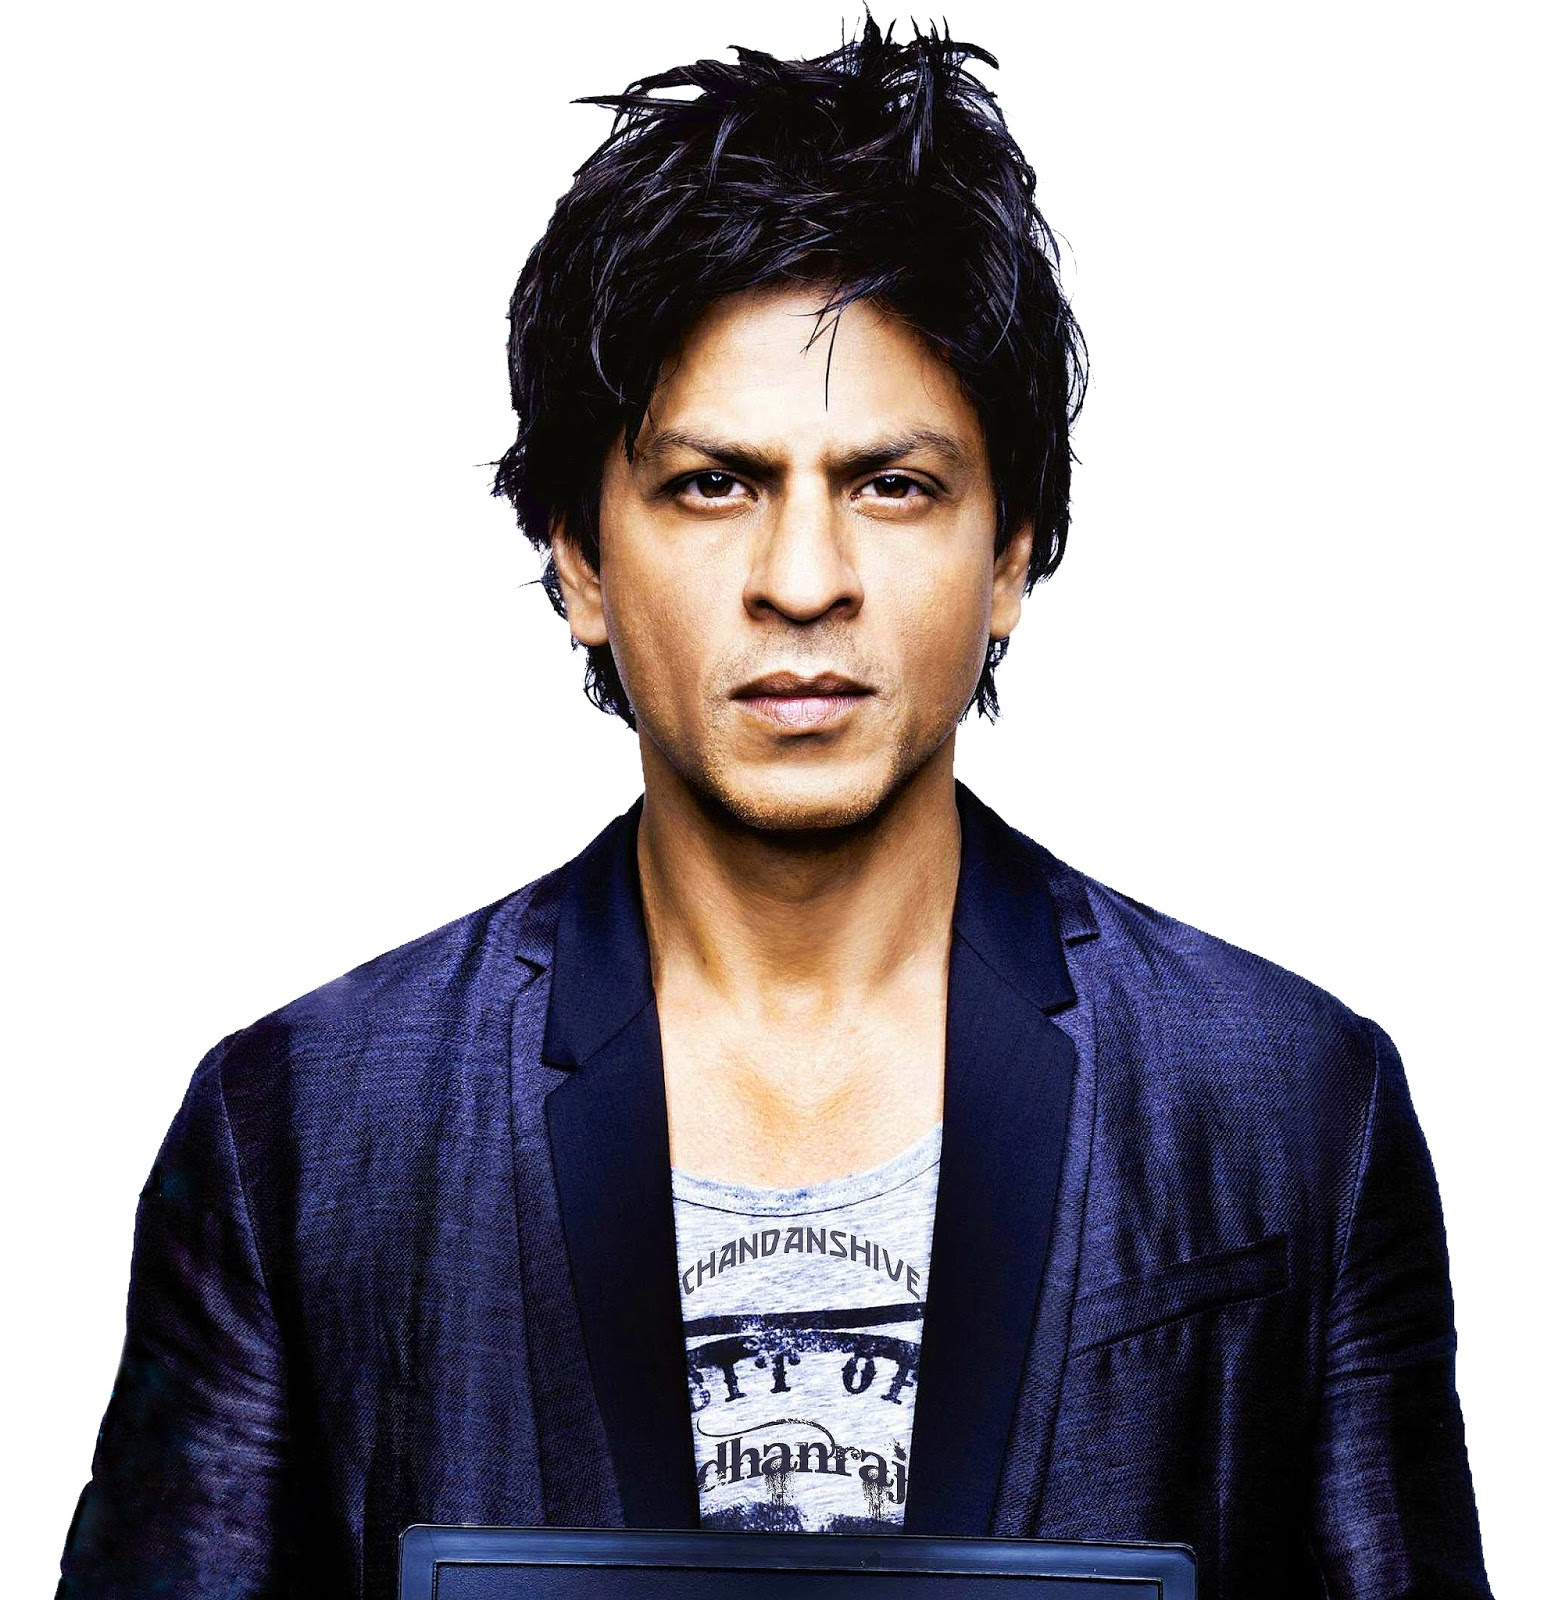 Shahrukh khan hd wallpapers free download hd wallpapers llc - Shahrukh khan cool wallpaper ...